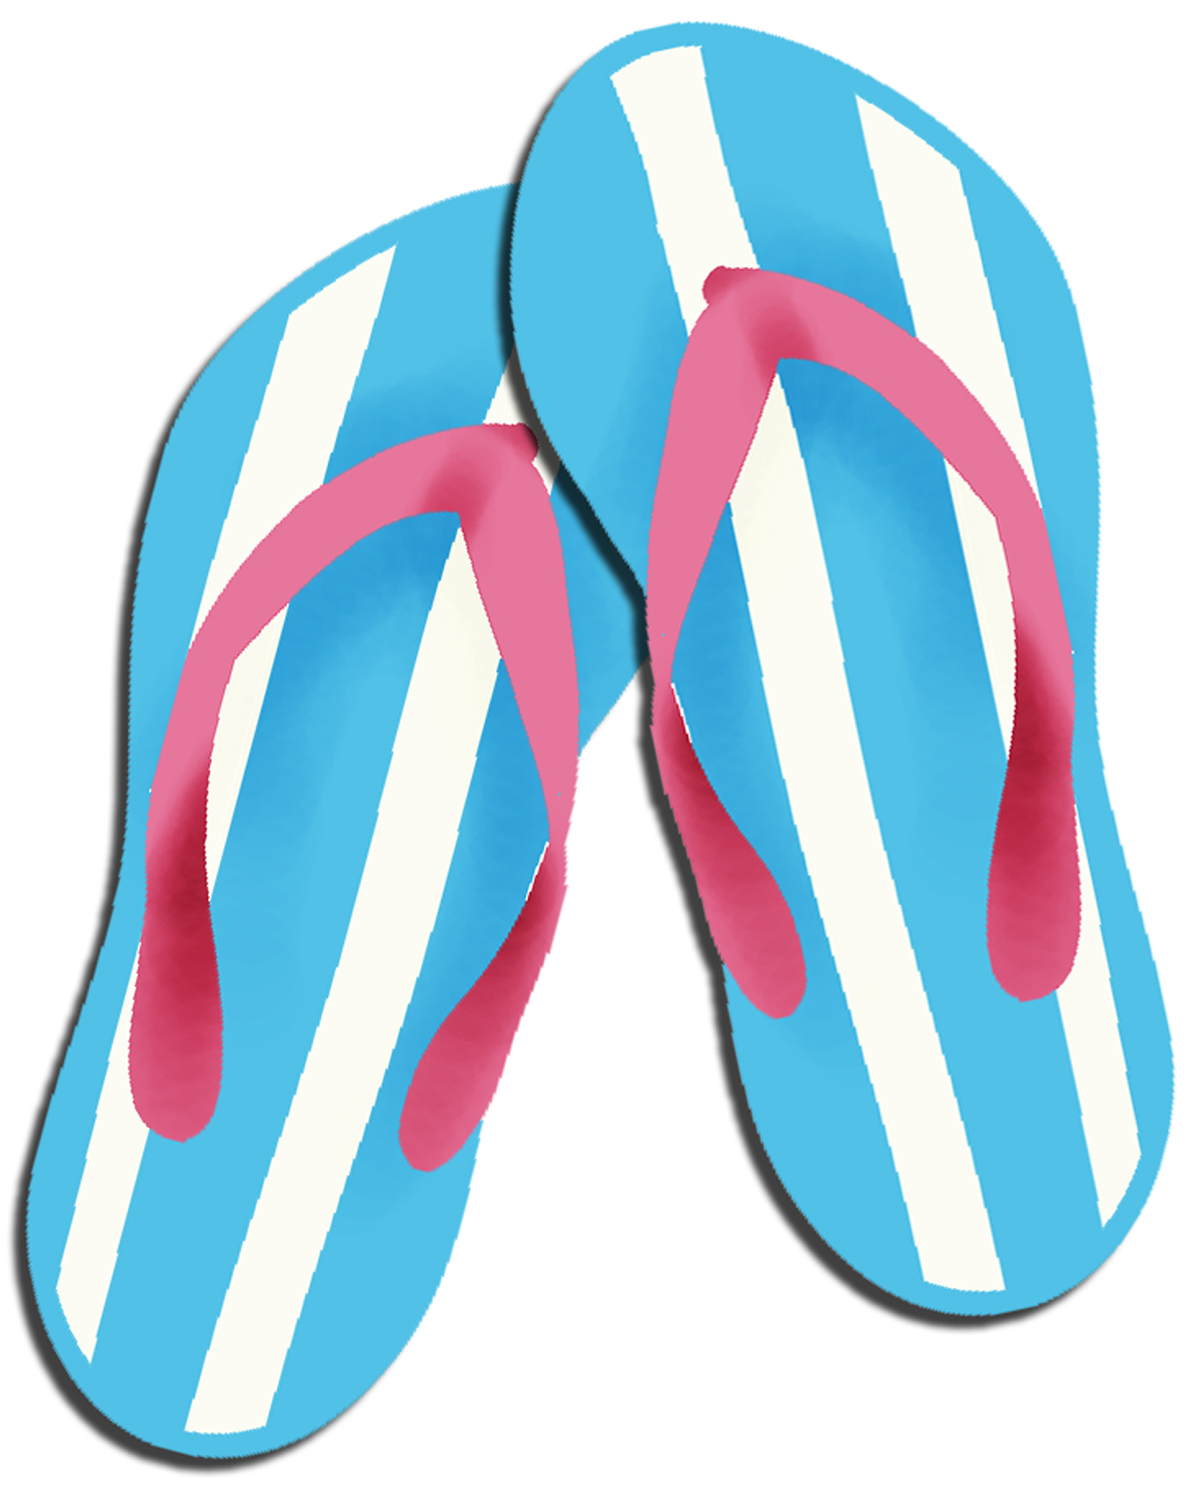 Free clipart images of flip flops svg black and white stock Best Flip Flop Clipart #3385 - Clipartion.com svg black and white stock